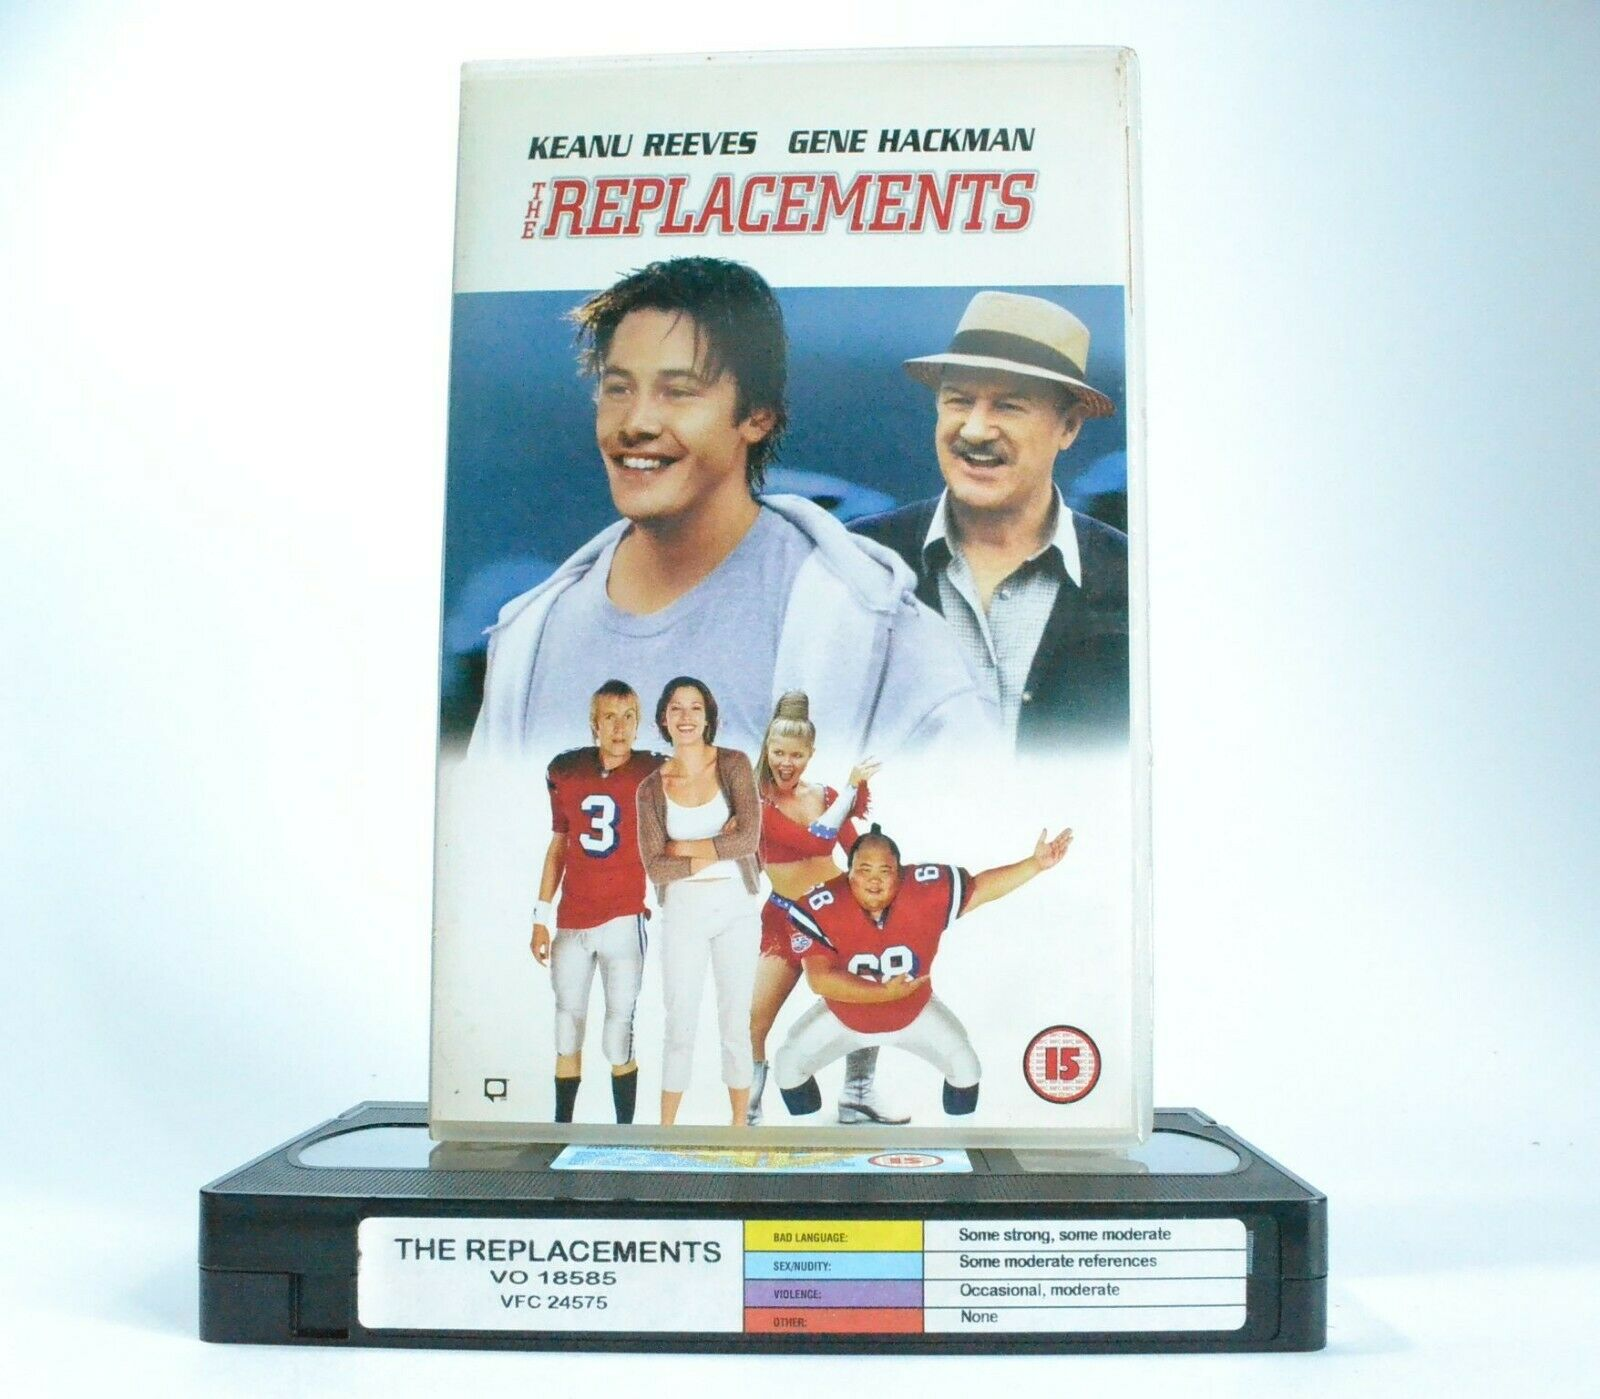 The Replacements: Sports Comedy (2000) - Large Box - K.Reeves/G.Hackman - VHS